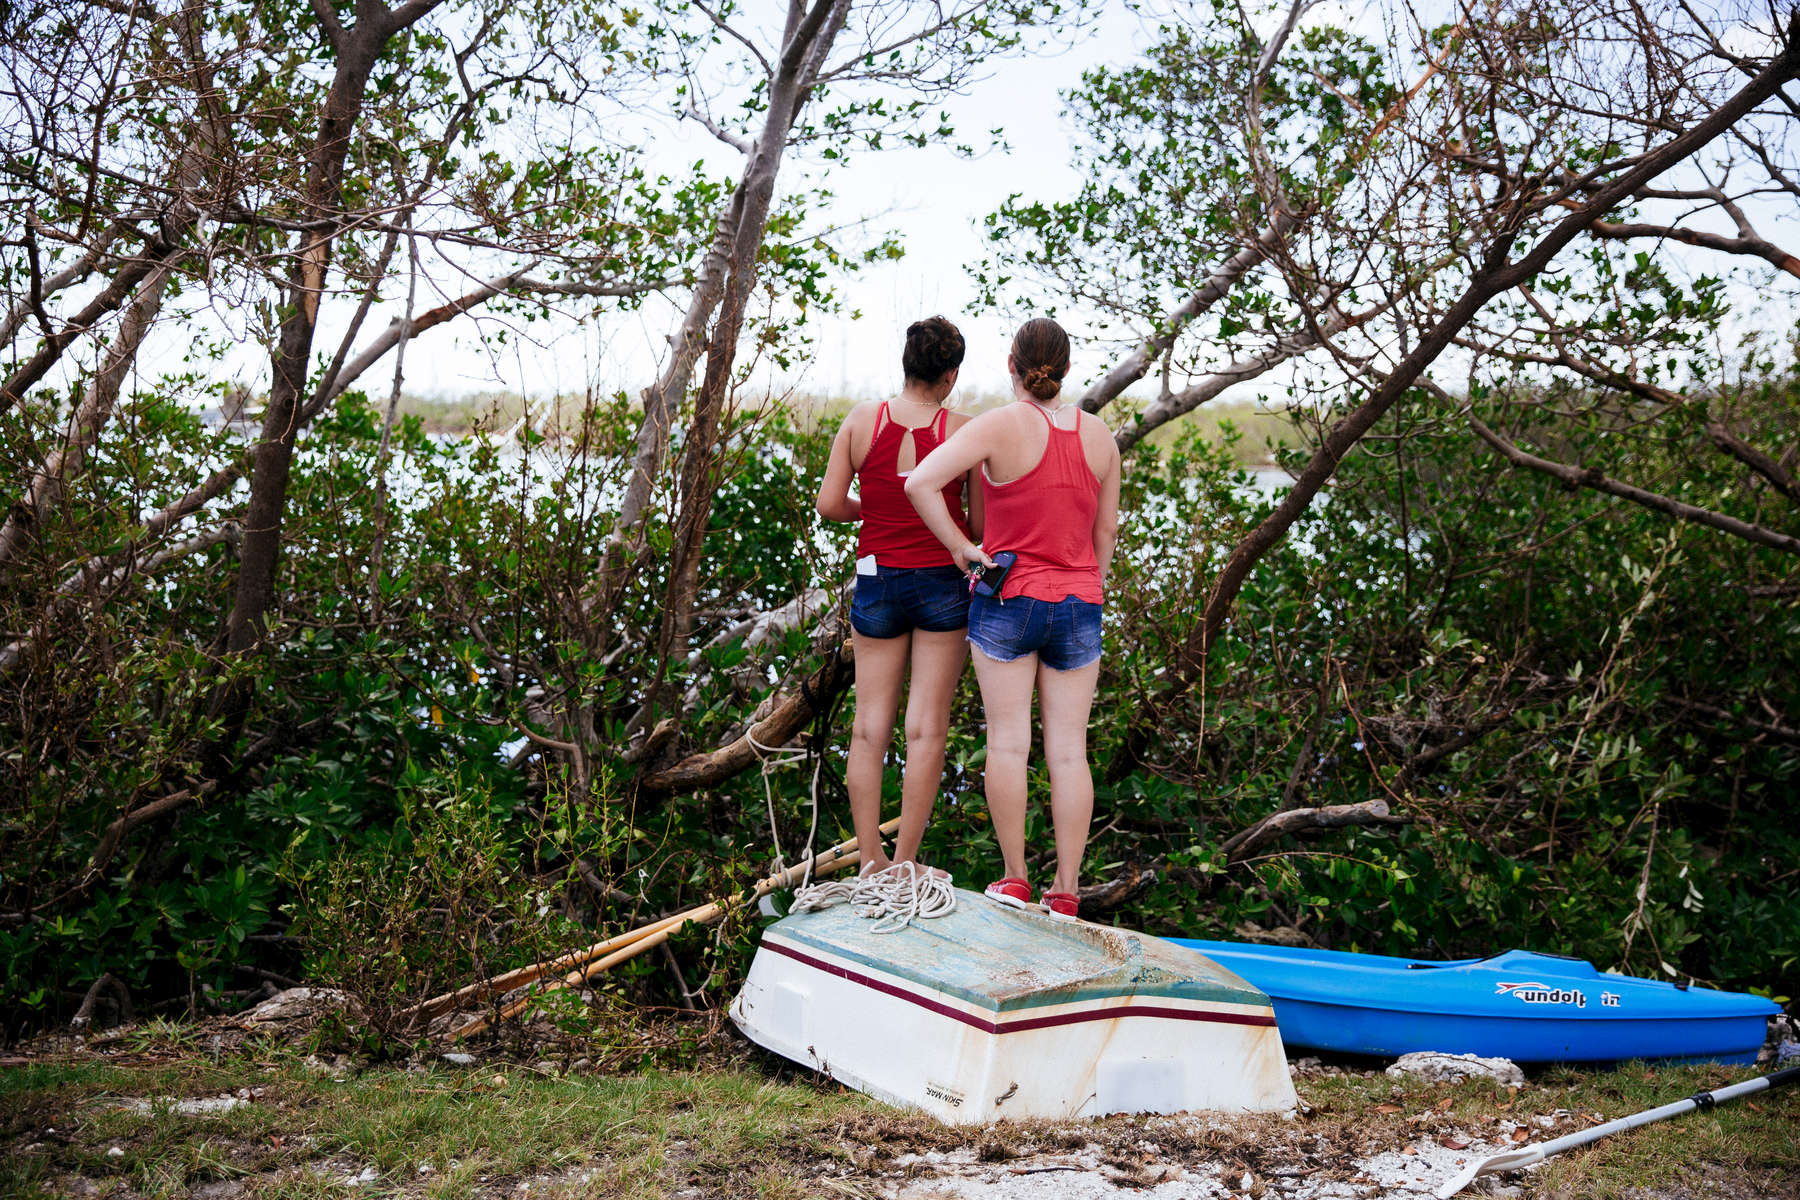 Marathon, Fla. - September 13, 2017: in the Little Venice section of Marathon, Fla. CREDIT: Kevin Hagen for The New York TimesNYTSTORM